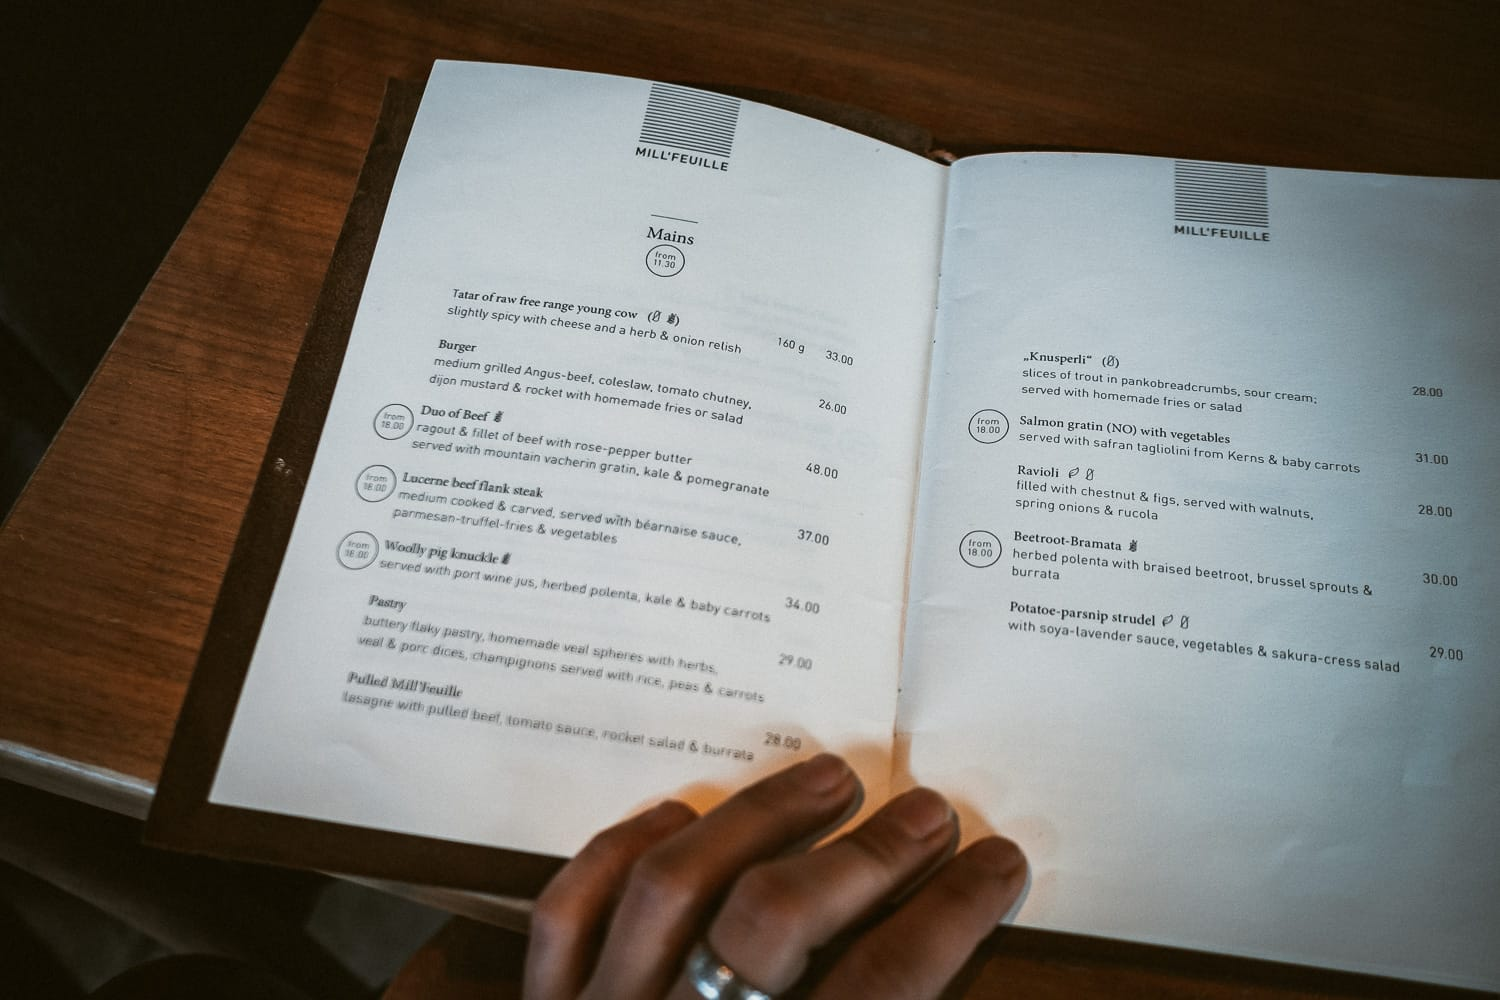 checking the menu at a Mill'Feuille